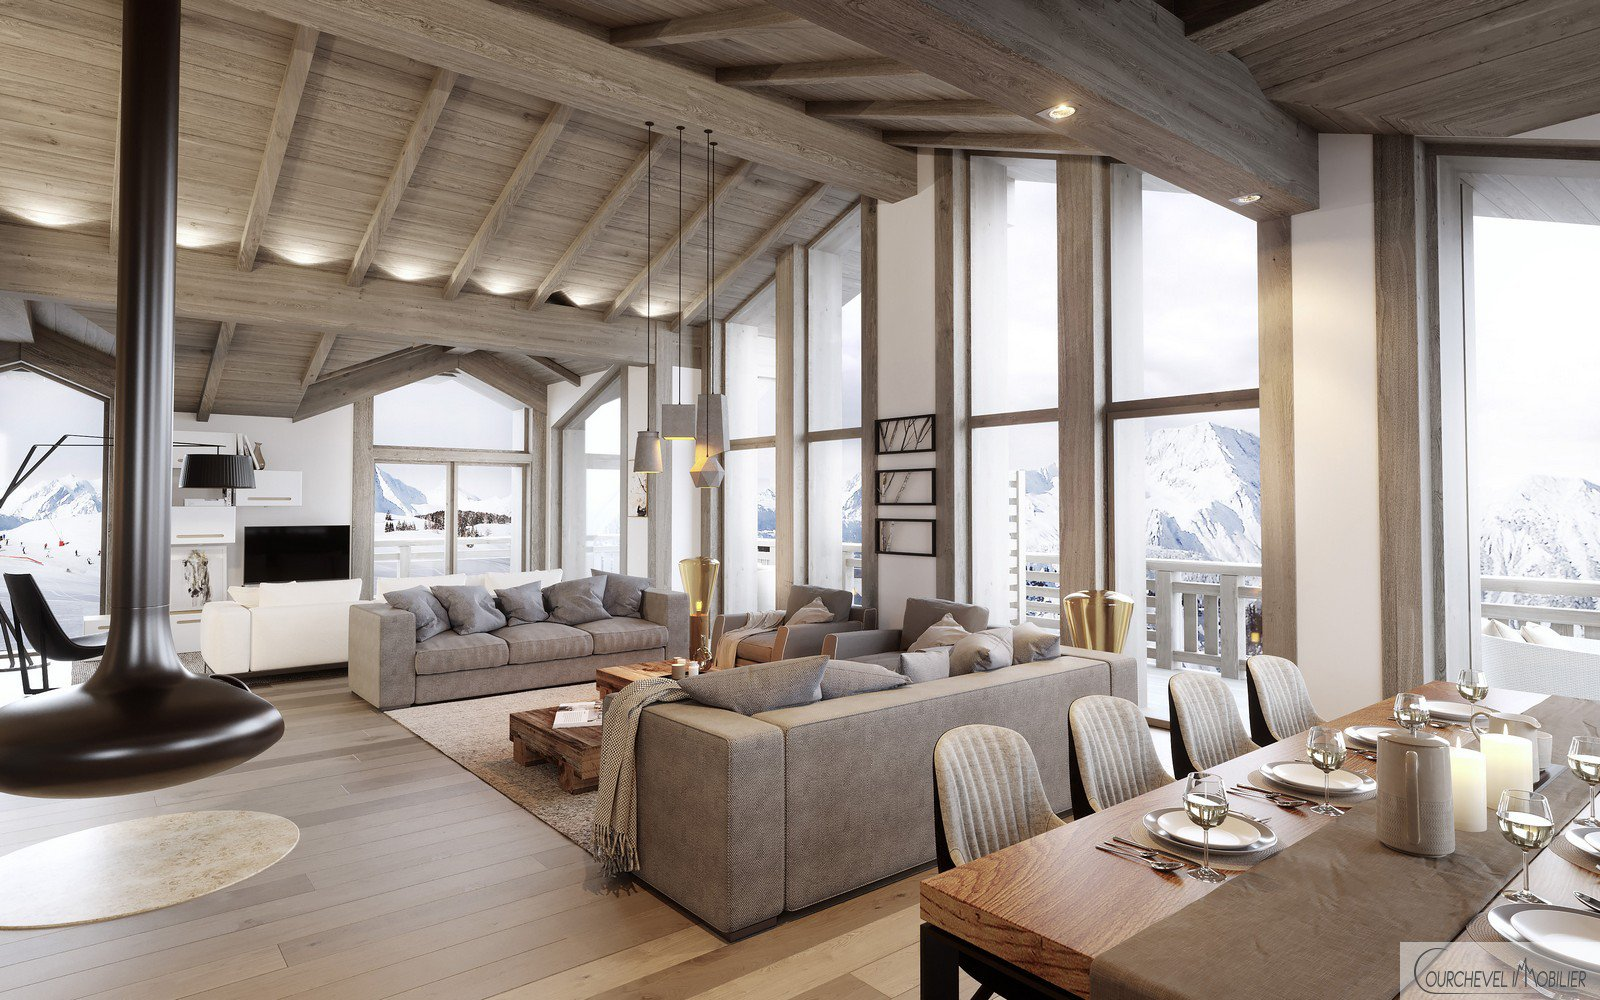 Nieuwbouw Chalet - Courchevel Moriond 1650